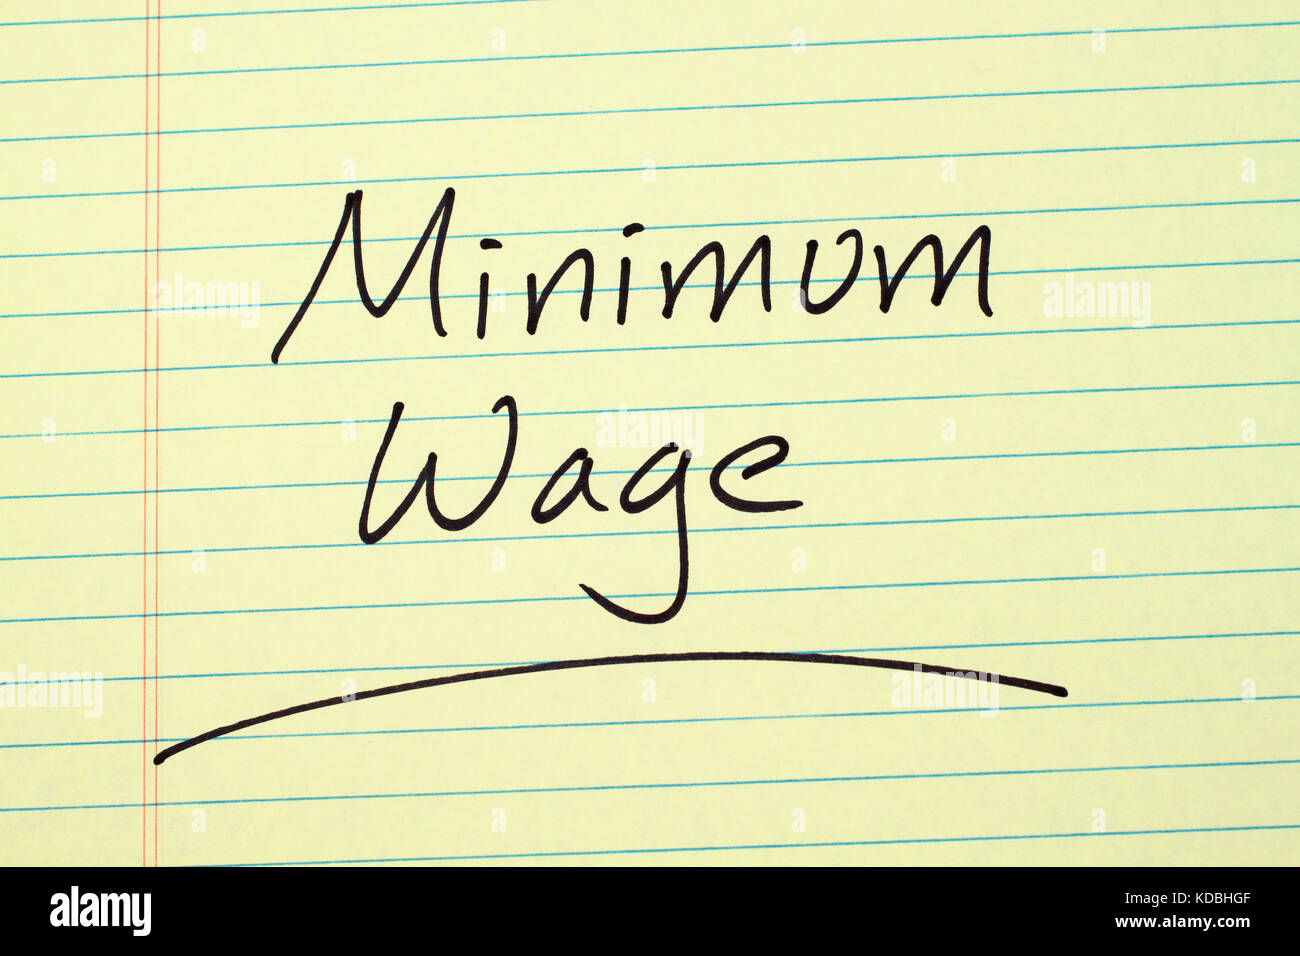 The word 'Minimum Wage' underlined on a yellow legal pad - Stock Image